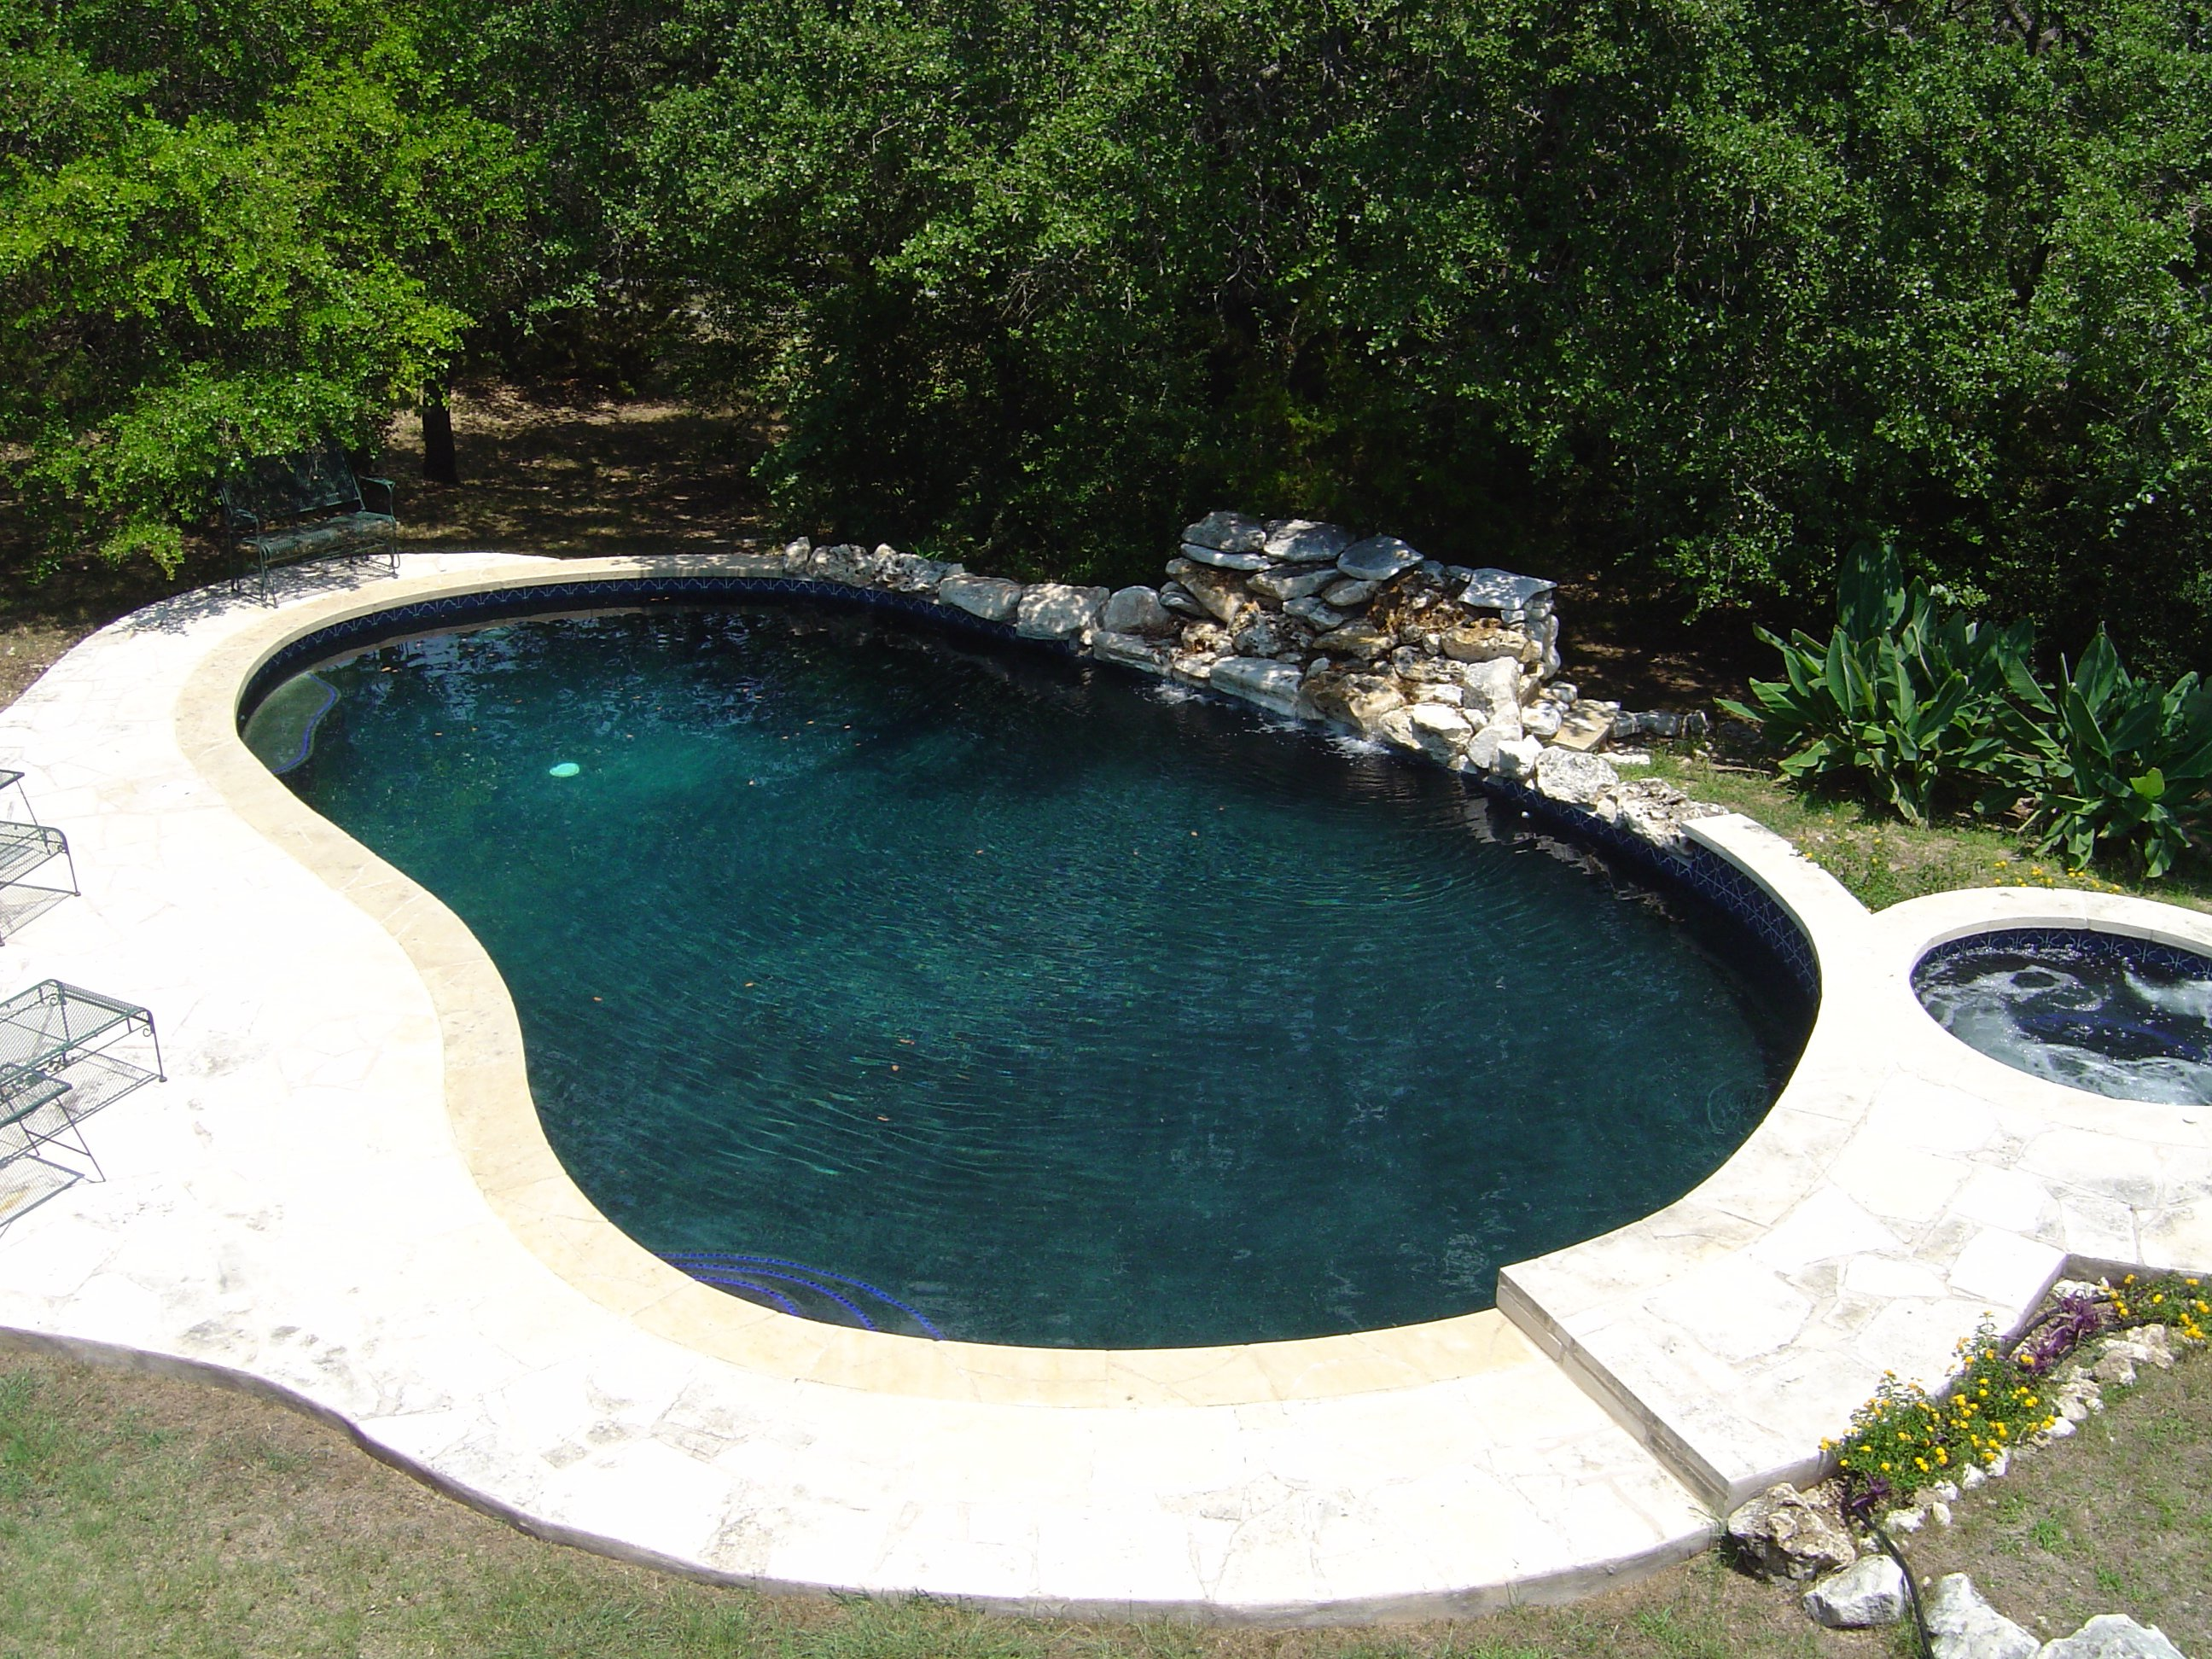 Ranch Home with Pool, Spa, Waterfall and Black Bottom